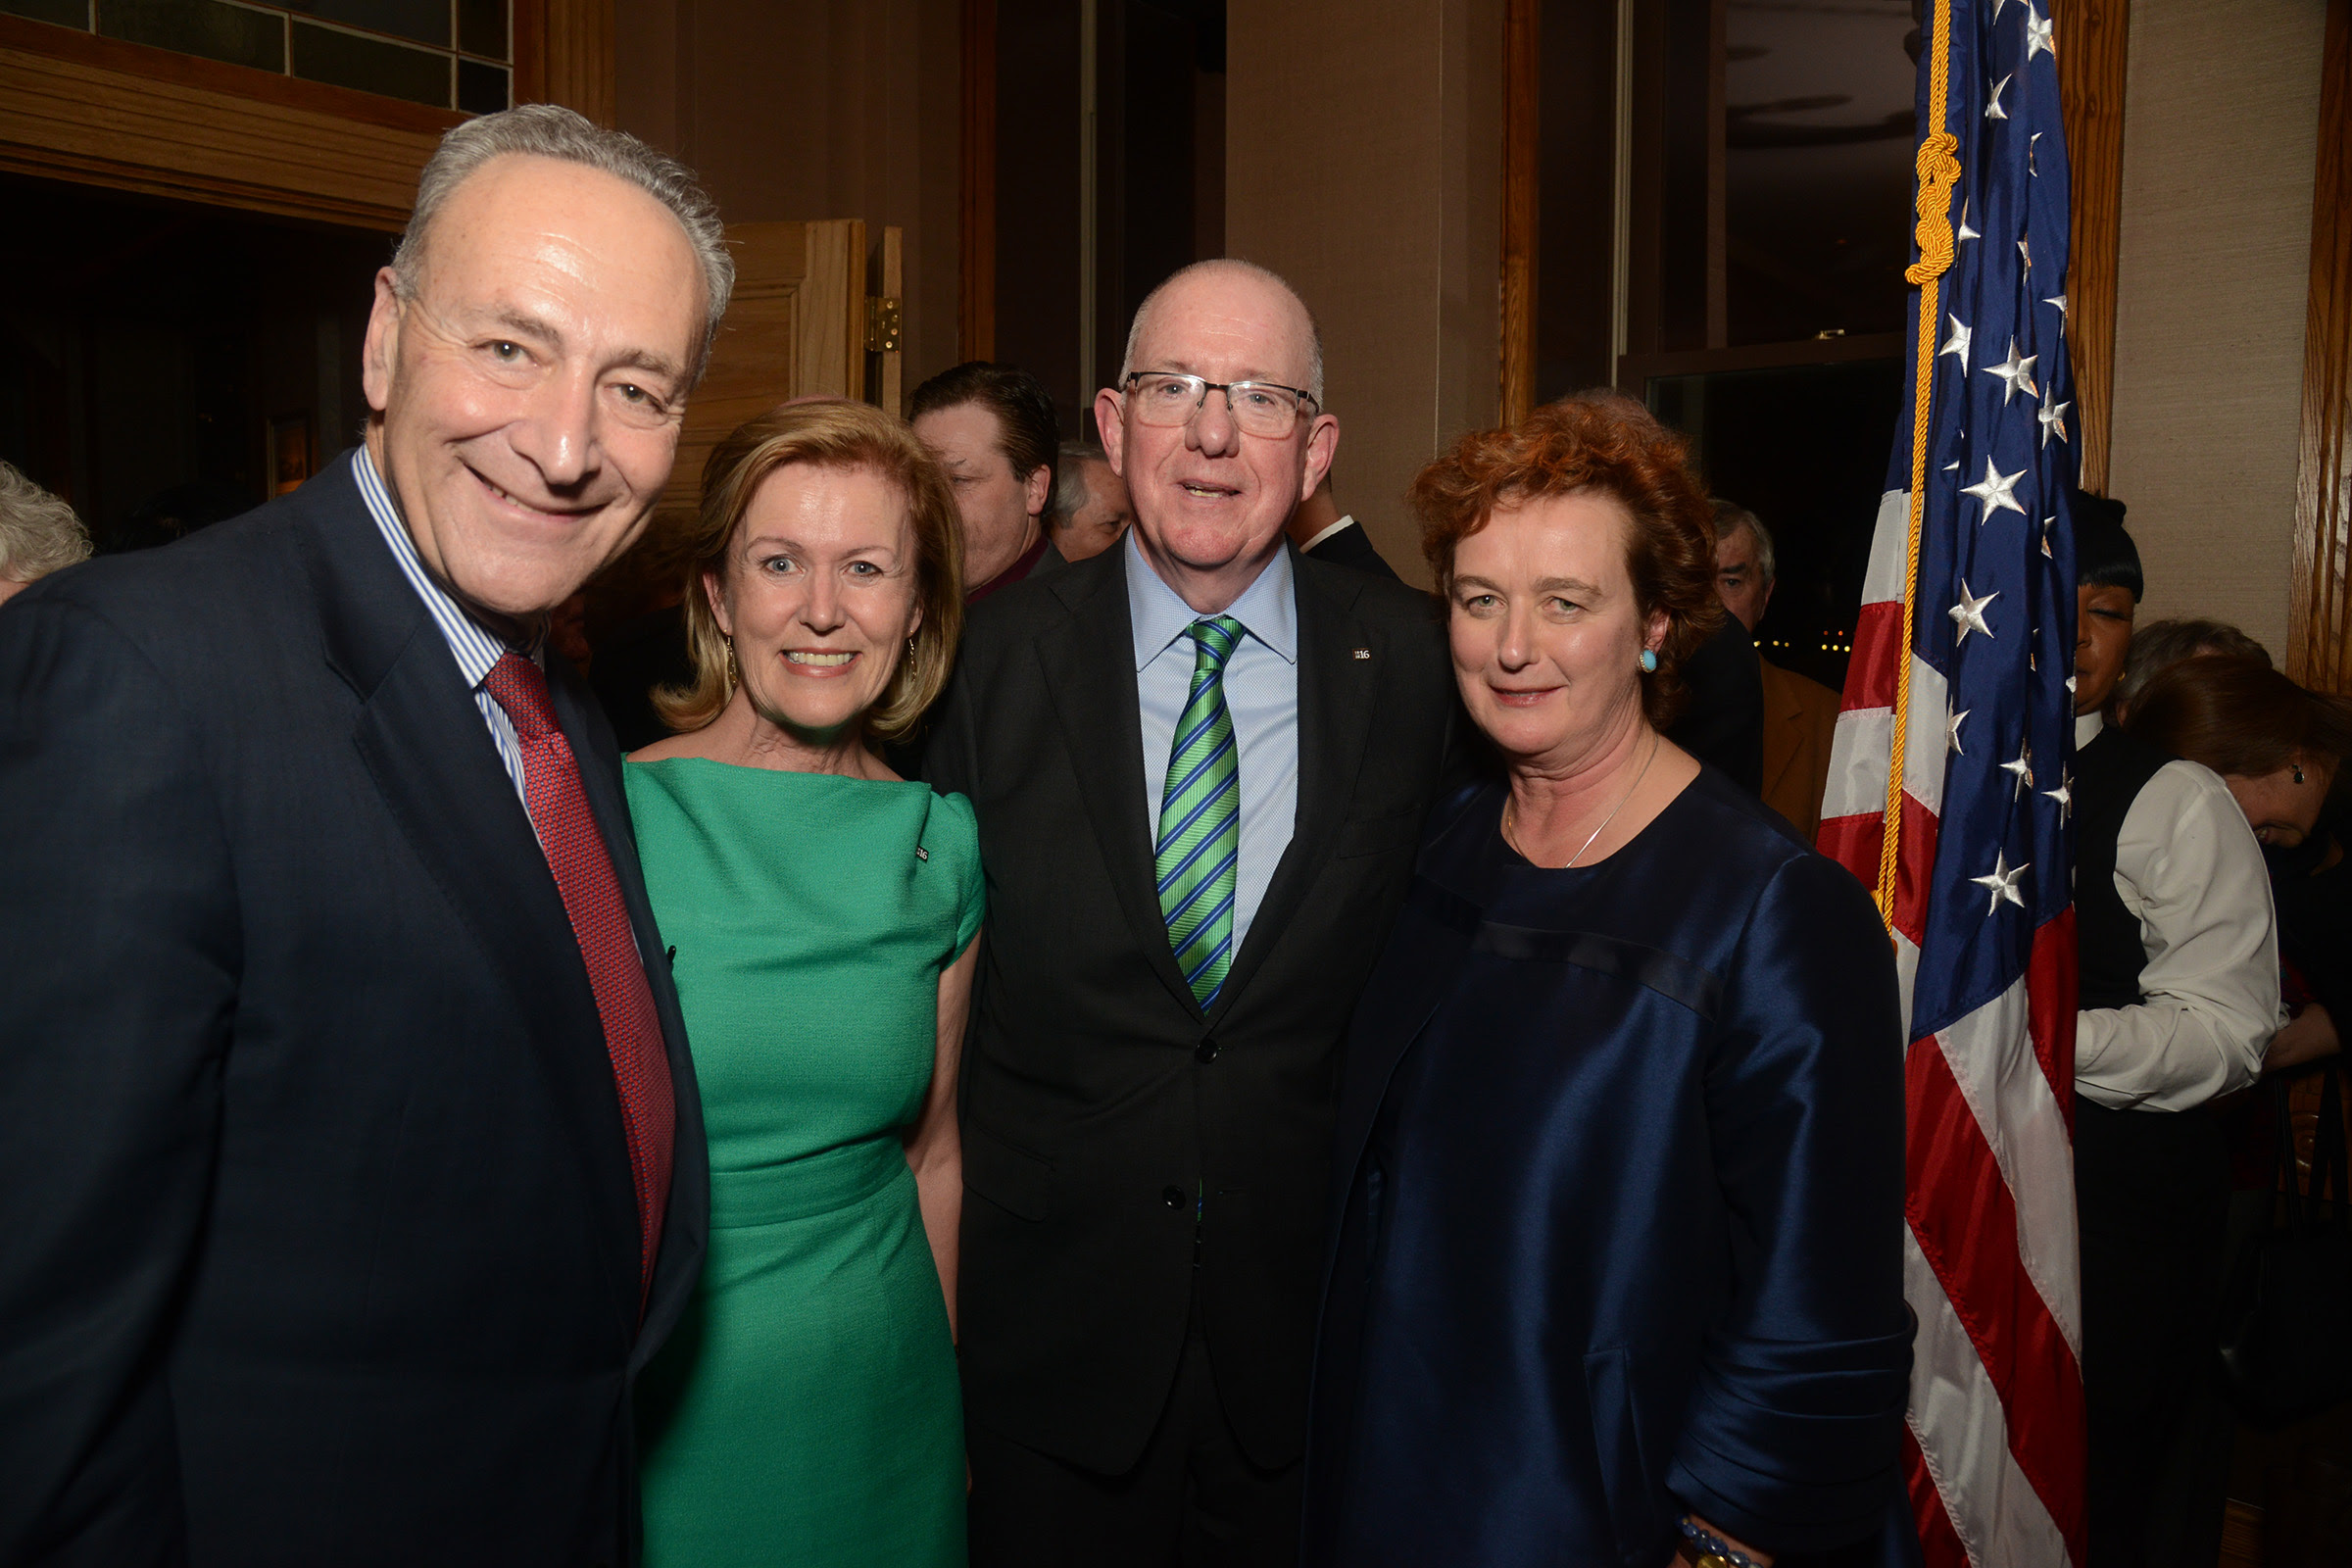 New York Senator Chuck Schumer with Ambassador Anne Anderson, Minister Charlie Flanagan and Consul General Barbara Jones at Pier A in January. (Photo: James Higgins)